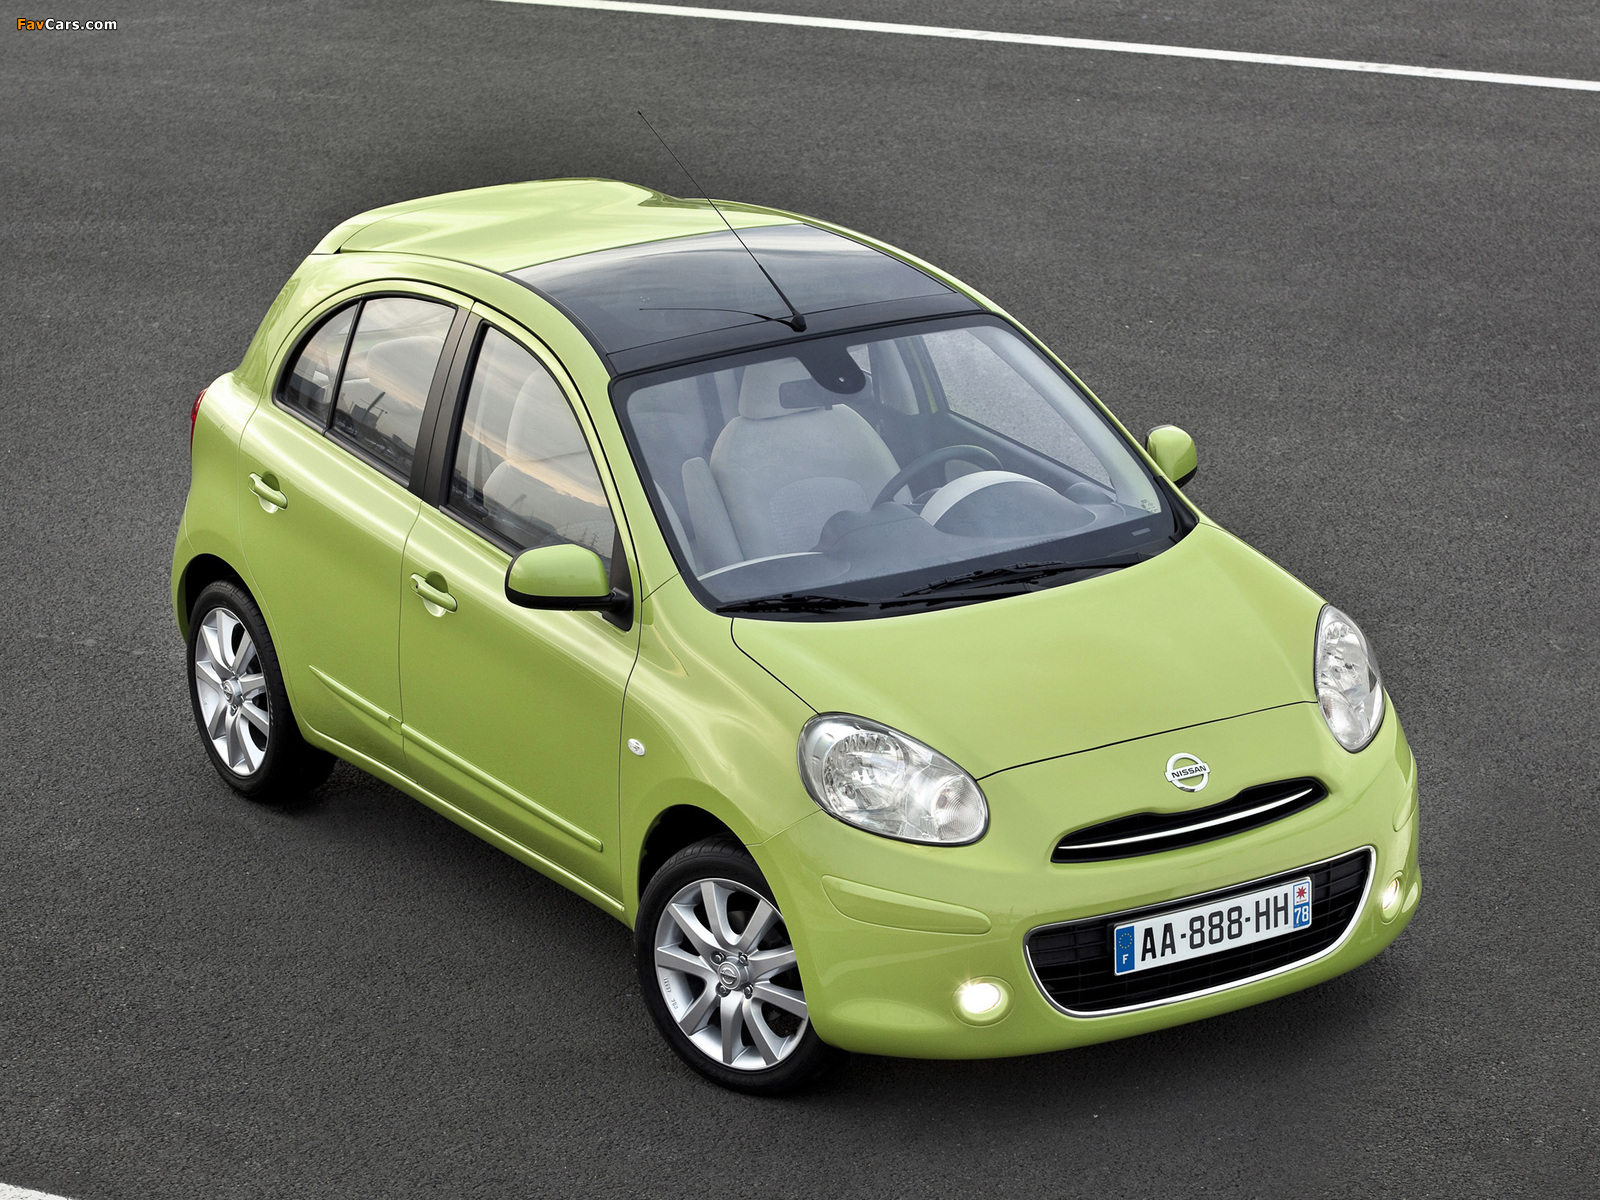 2010 nissan micra k13 pictures information and specs. Black Bedroom Furniture Sets. Home Design Ideas